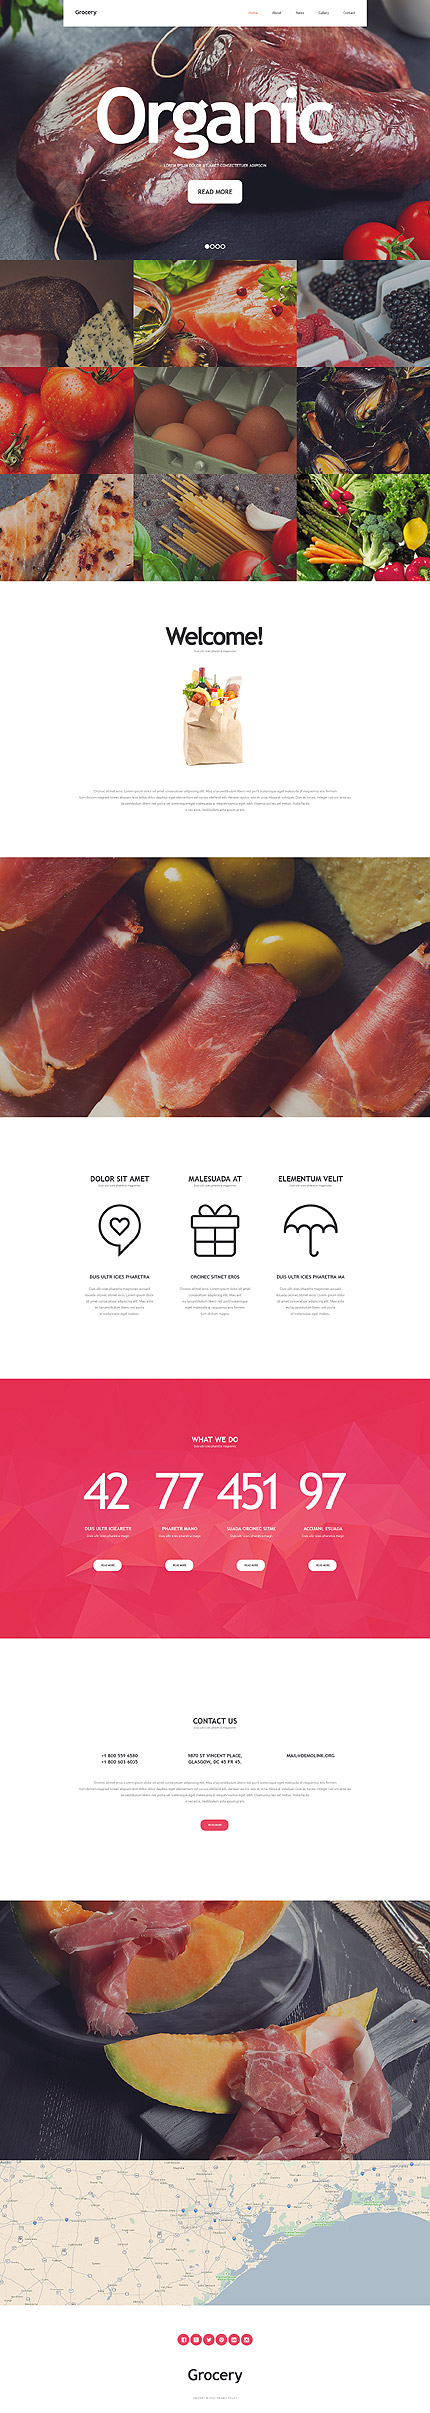 Food & Drink Most Popular website inspirations at your coffee break? Browse for more Bootstrap #templates! // Regular price: $75 // Sources available: .HTML,  .PSD #Food & Drink #Most Popular #Bootstrap